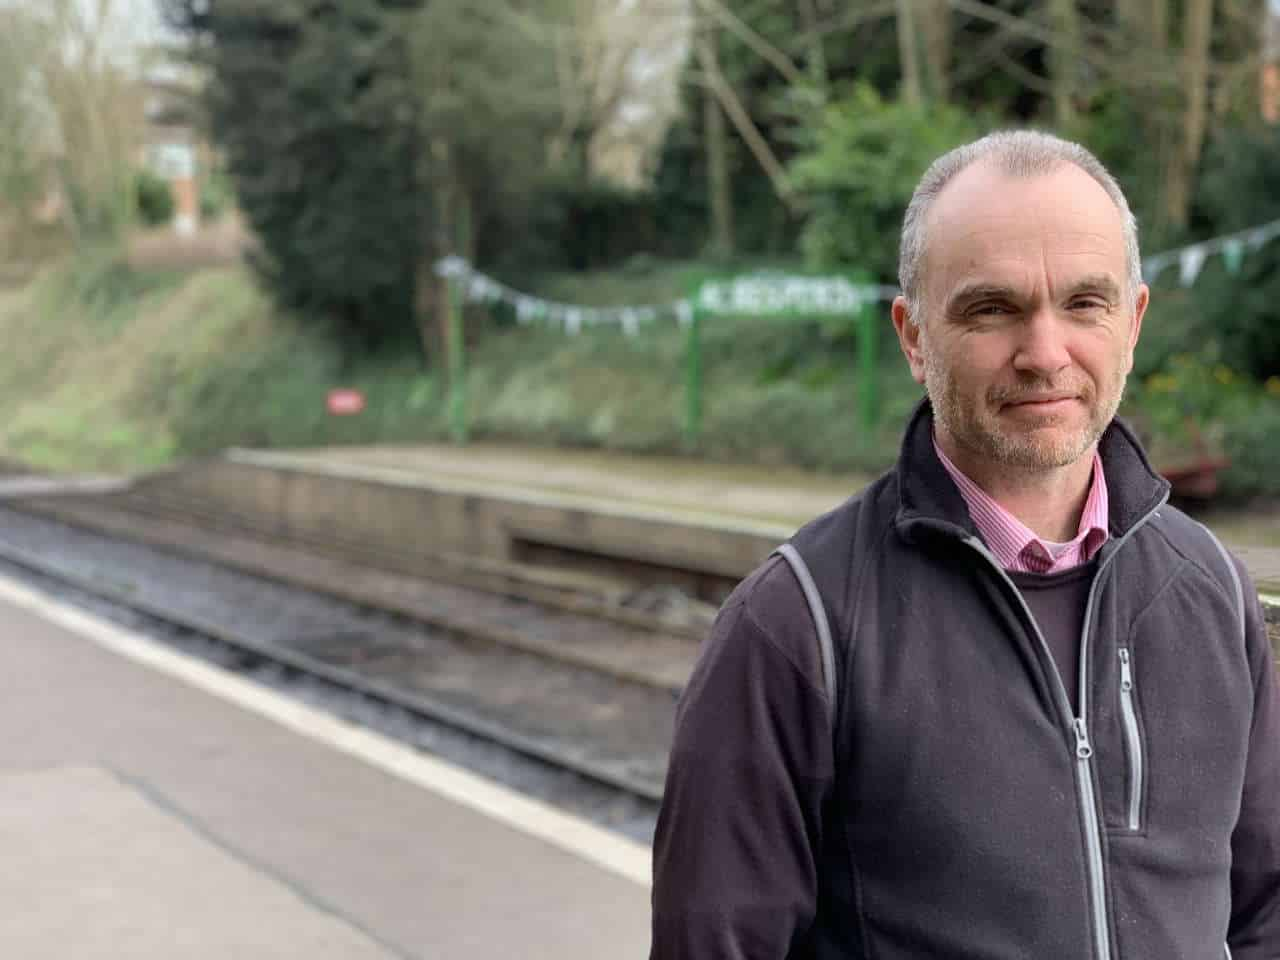 New General Manager for Mid Hants Railway